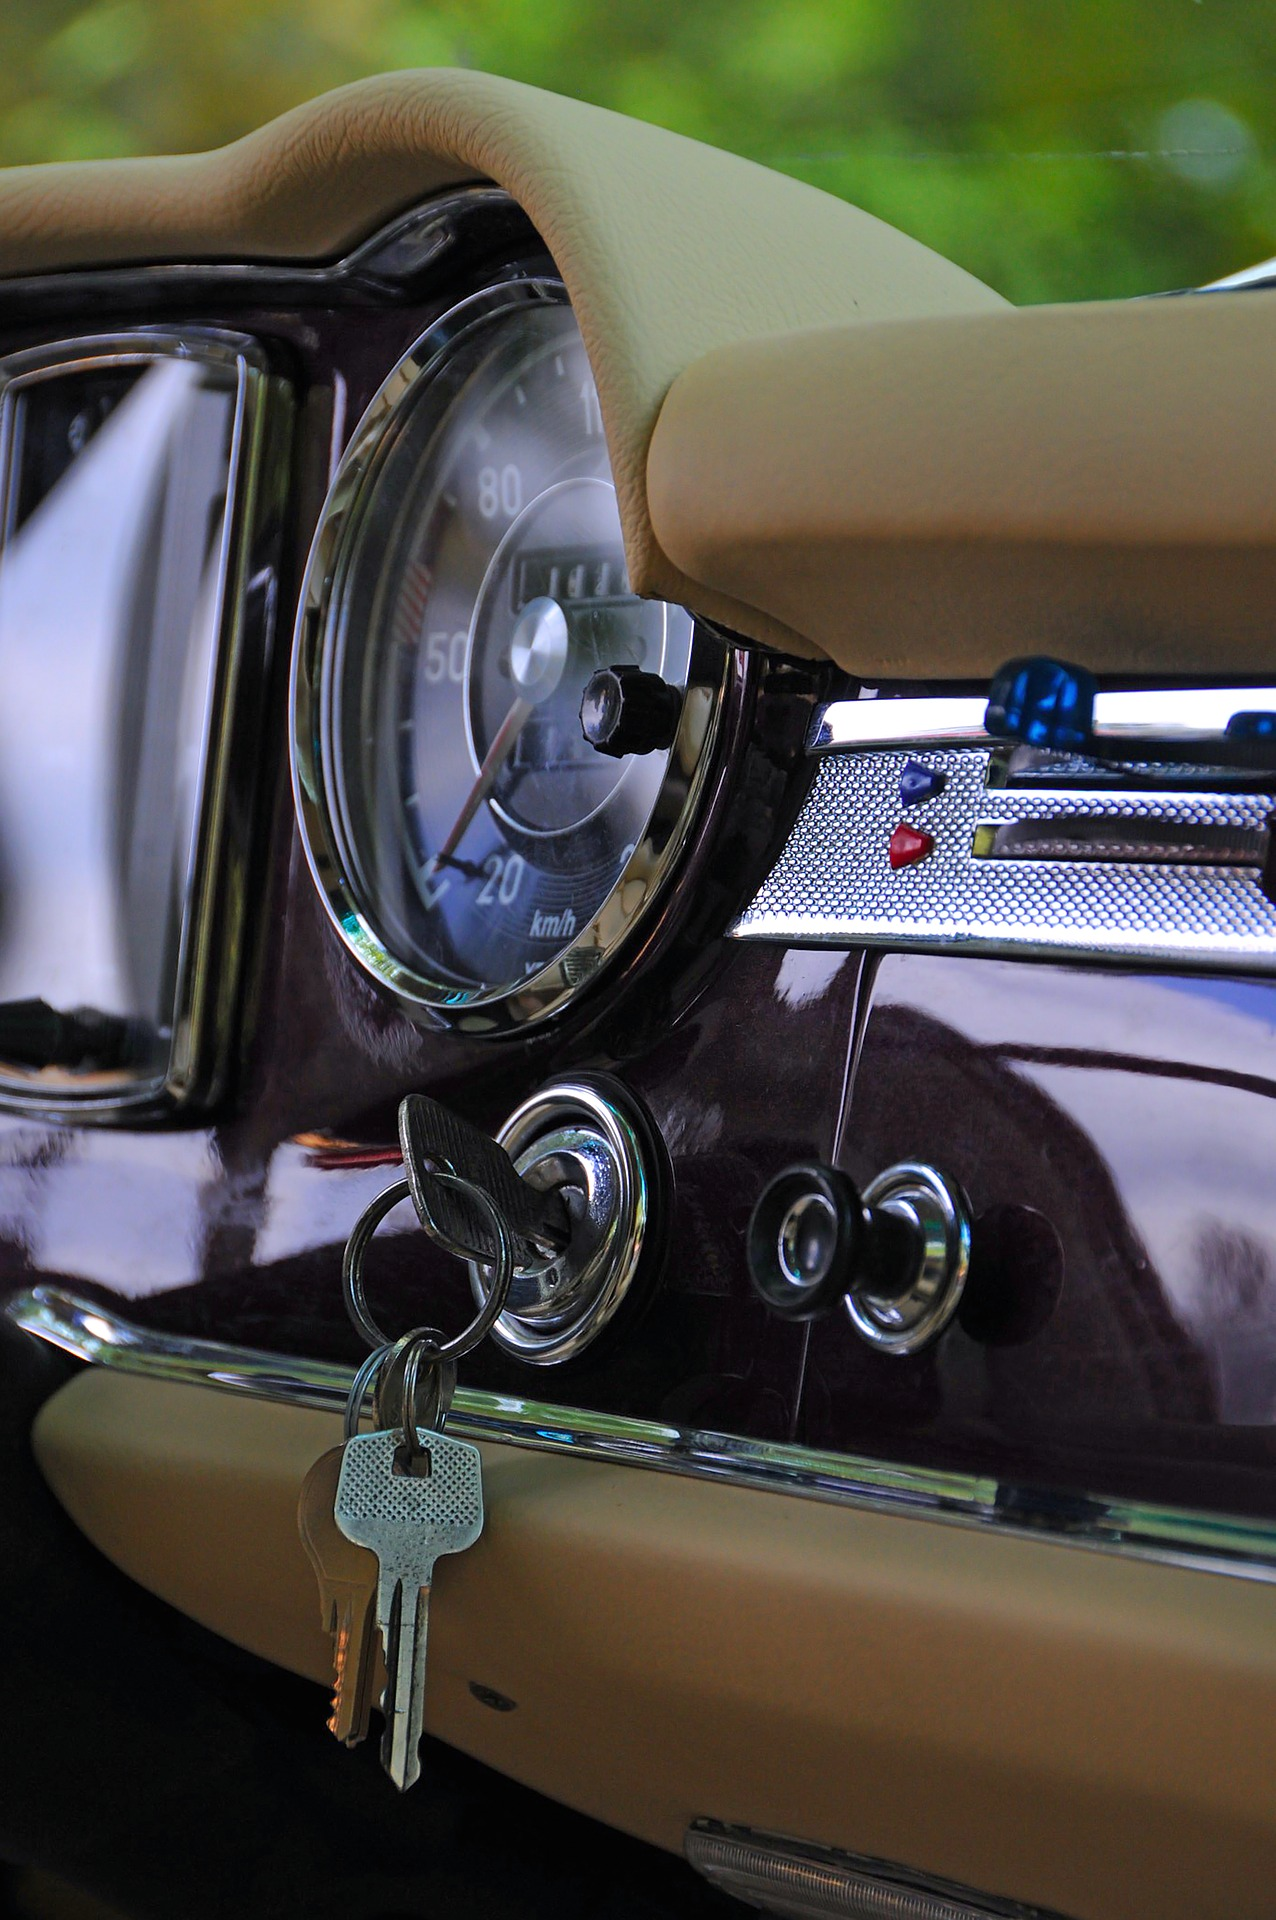 Car Door Locked Out? Get The Top Services Of Locksmith